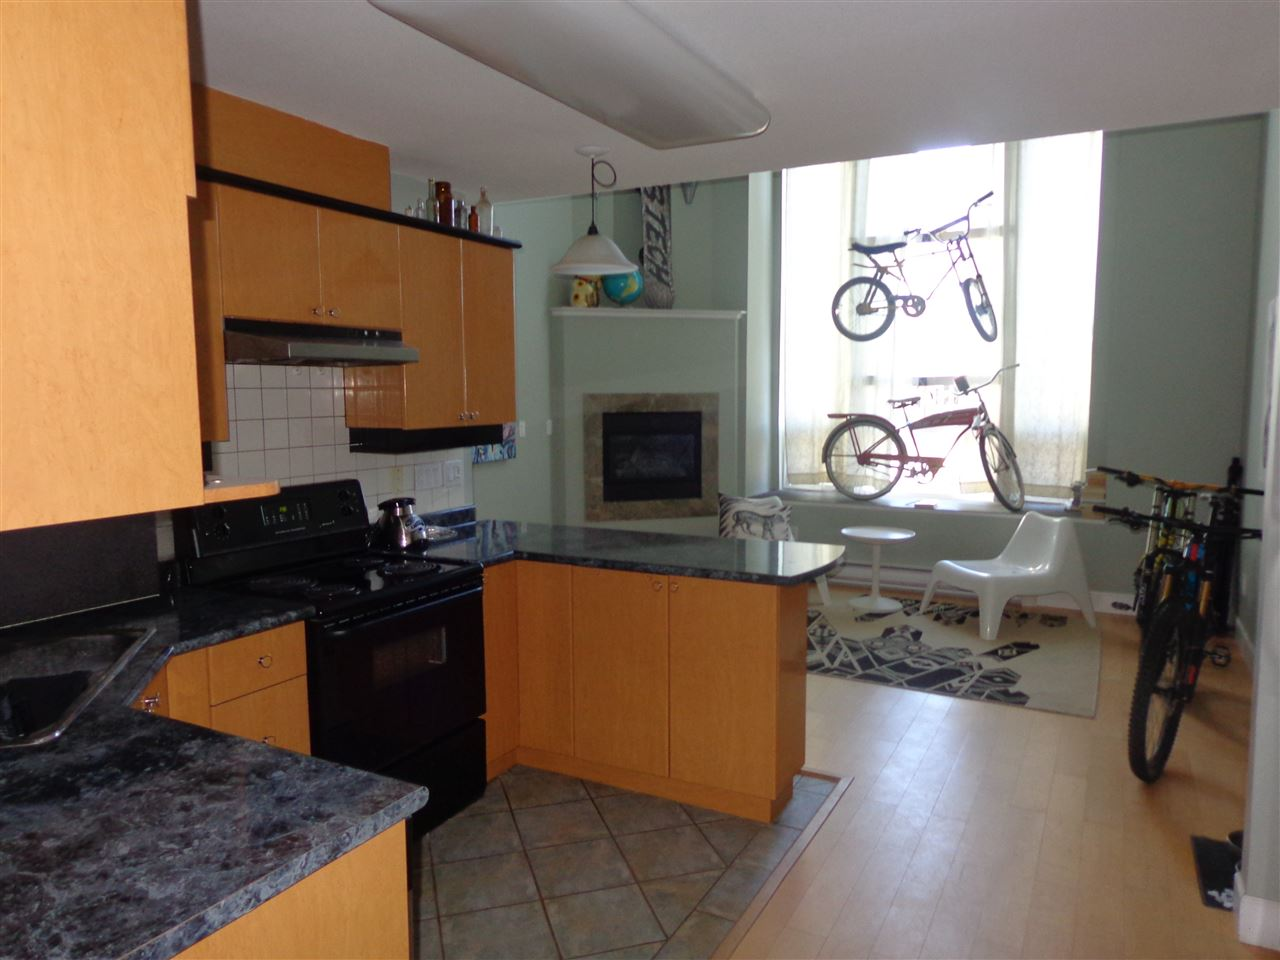 Photo 2: 3 3726 COMMERCIAL STREET in Vancouver: Victoria VE Condo for sale (Vancouver East)  : MLS(r) # R2037396